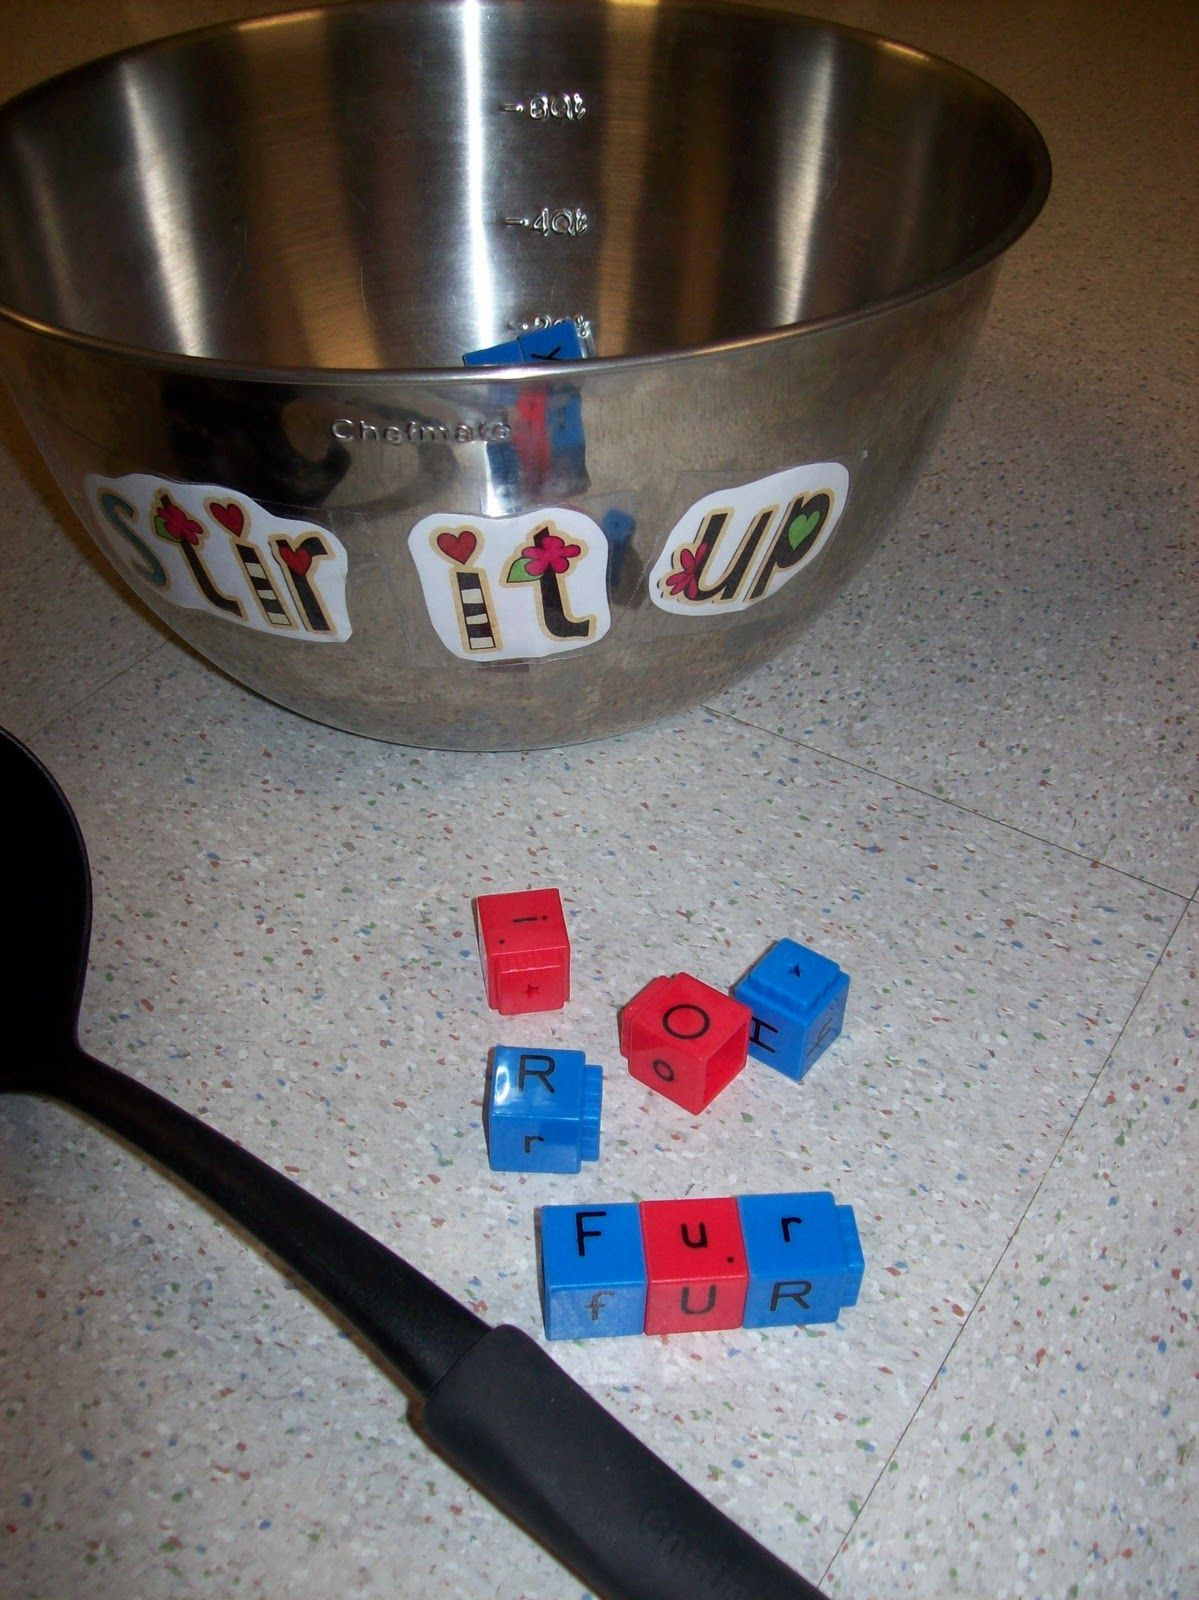 Stir It Up The Kids Used The Soup Ladle To Scoop Out Letter Cubes Then Build R Controlled